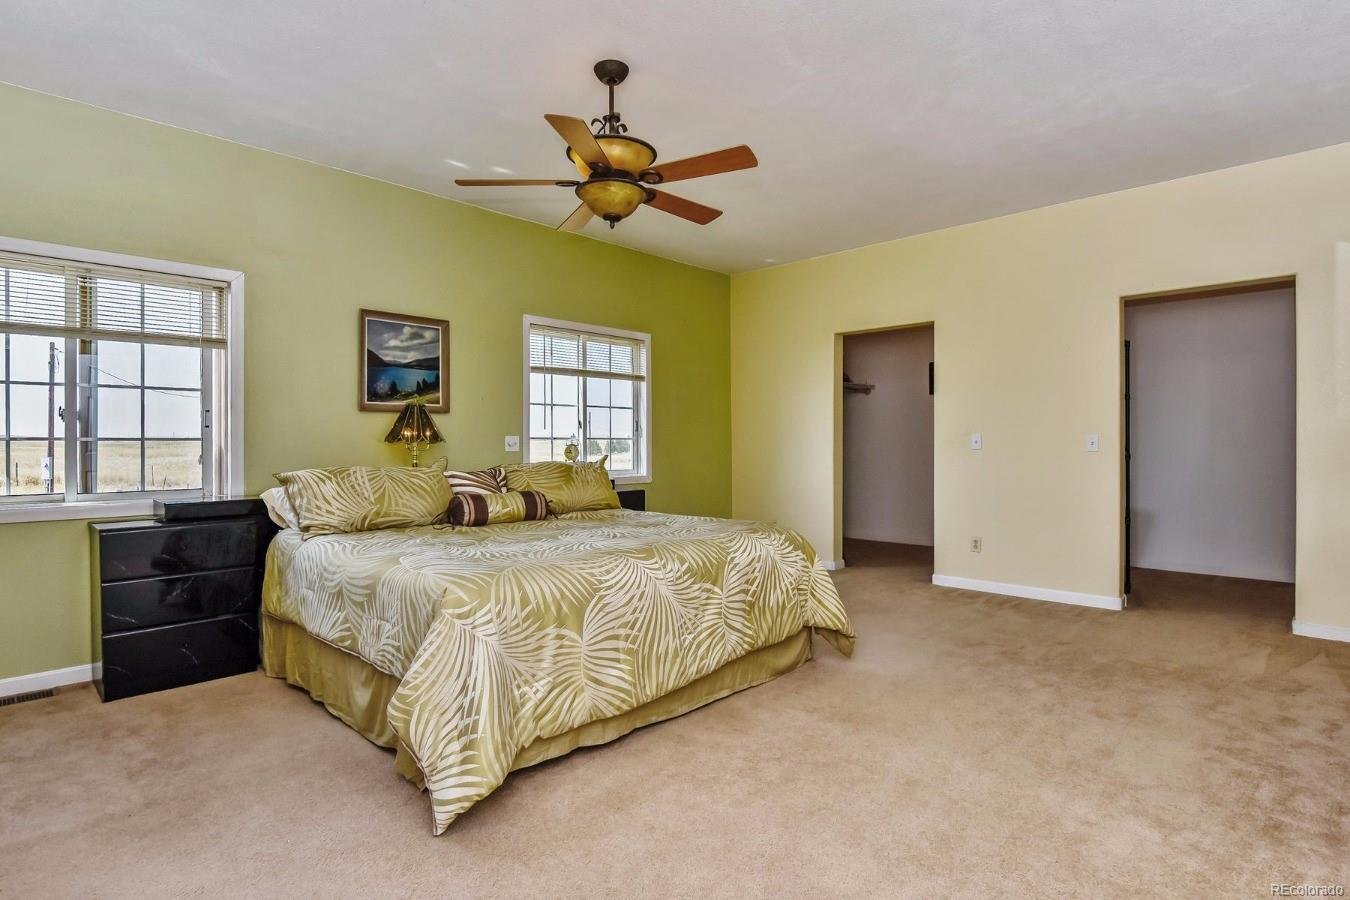 Luxury-Size Master Suite  Room for TV, Chaises and Extra Chest